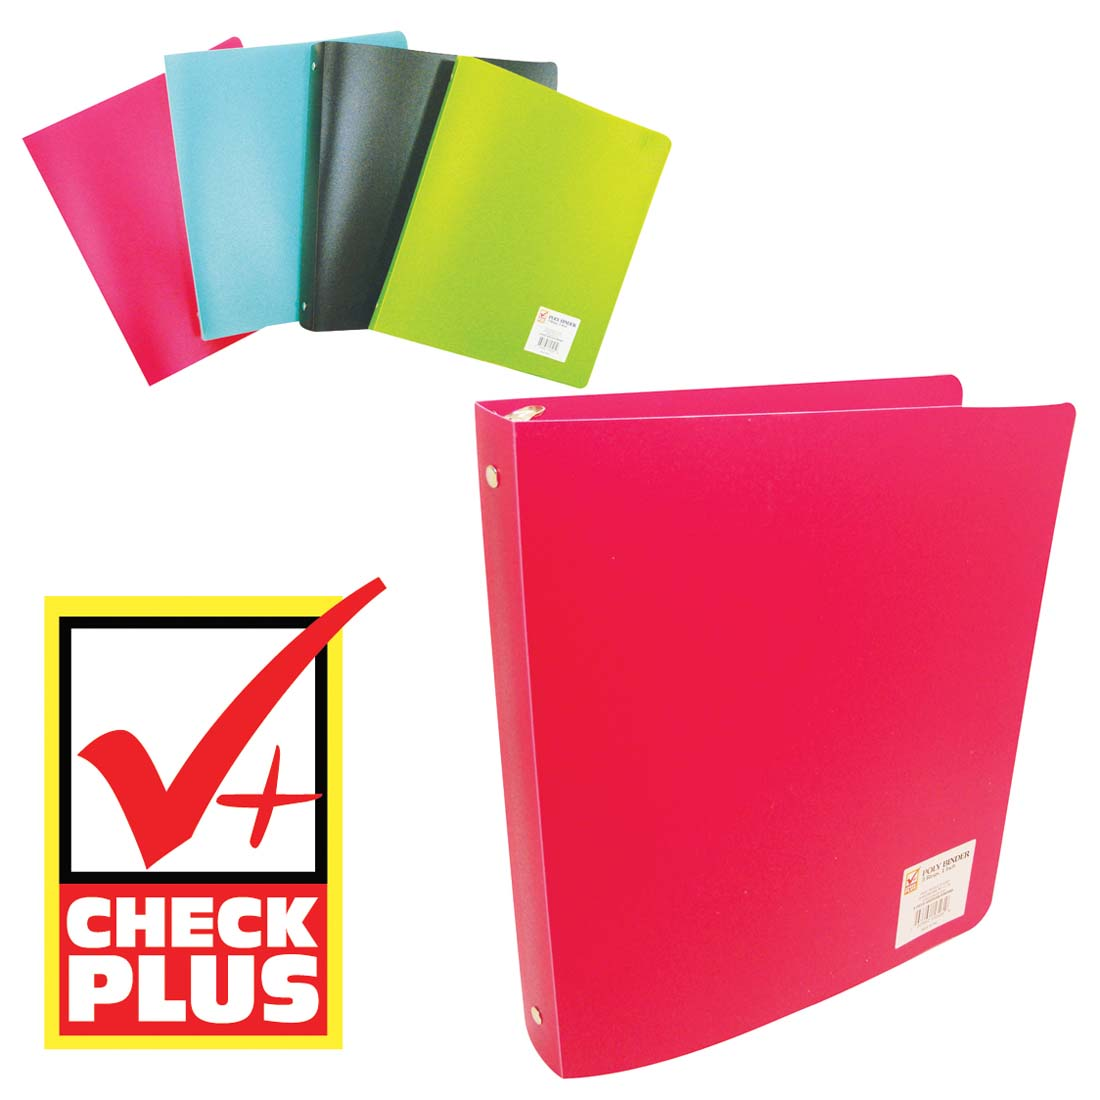 View BINDER 1 INCH 3 RINGS ASSORTED COLORS